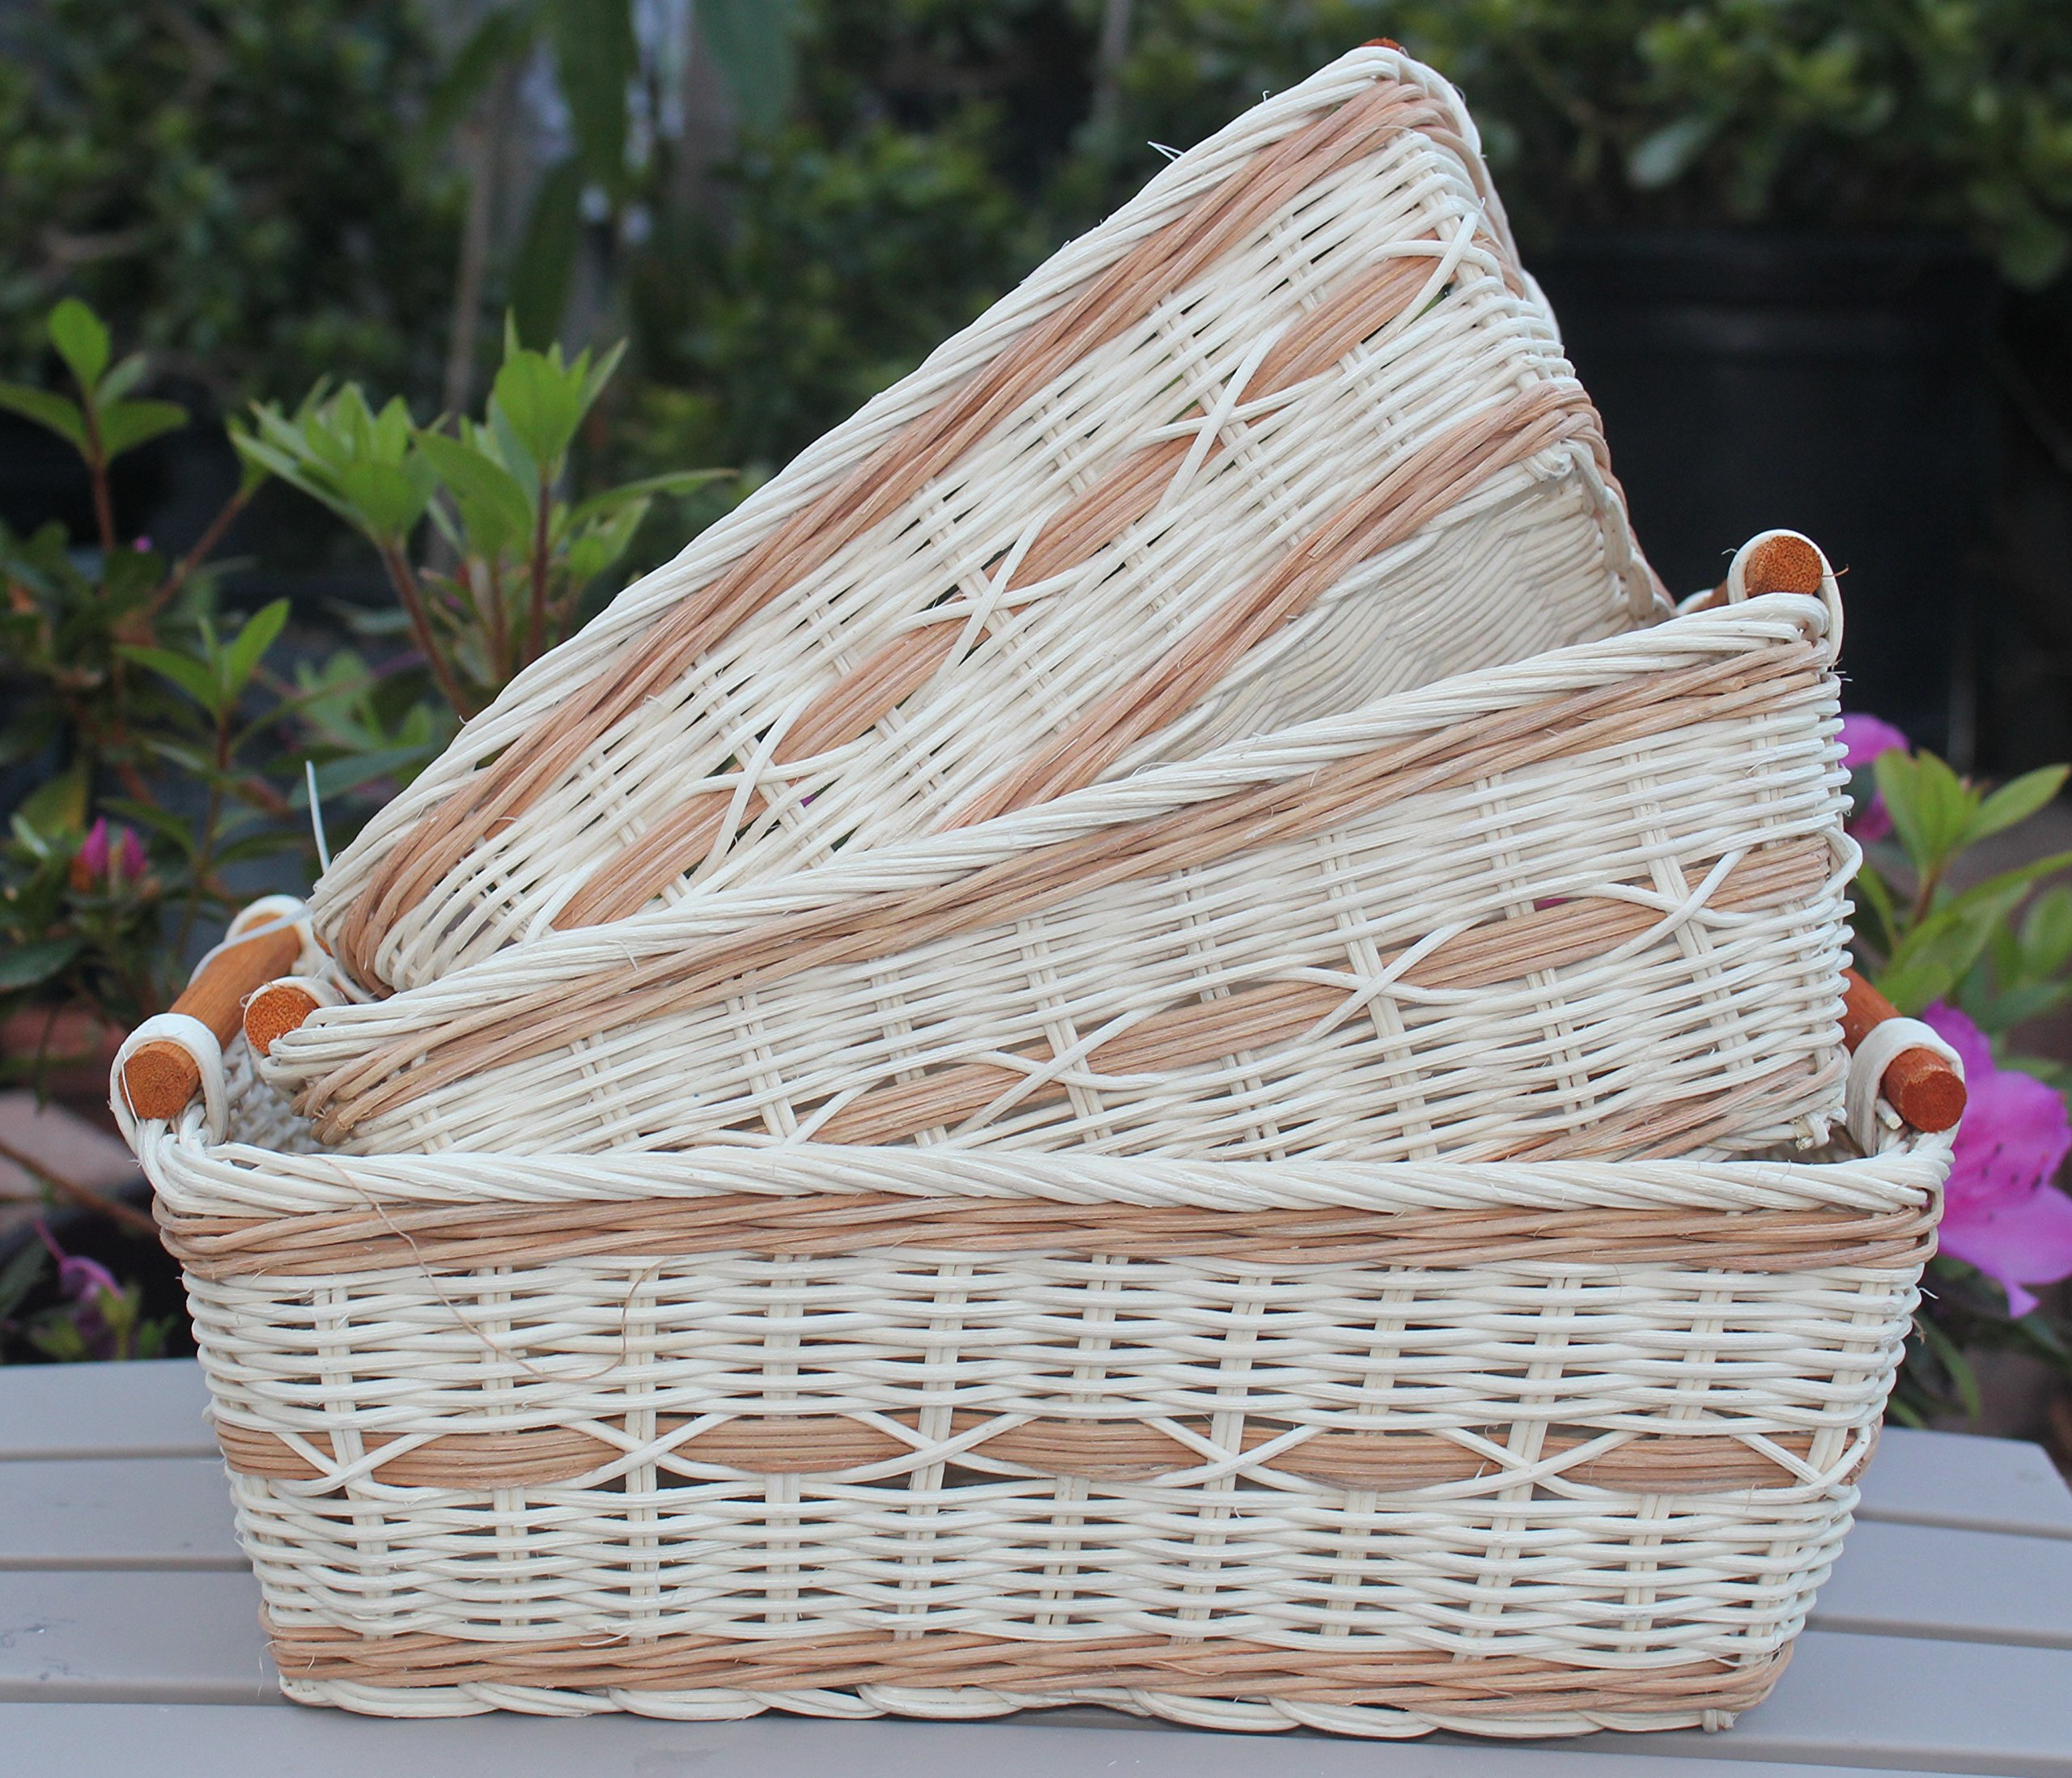 ShopOnNet RT430712-3 Handwoven Retangular Wicker Storage Basket with Handle in Cream and Brown (Set of 3) - Sold as a set of three. Handwoven eco-friendly wicker basket with durable rattan wicker material and each comes with a curve pole handle on each end of the basket. These wicker baskets are also stackable, making storage easy and convenient. Make organizing any room in your home easy with this basket. These Wicker baskets are handcrafted therefore they may vary slightly in sizes. Dimension: * Large size: L11.8 inches x W9.1 x H4.0 inches; - living-room-decor, living-room, baskets-storage - 91ZZNM2ofxL -